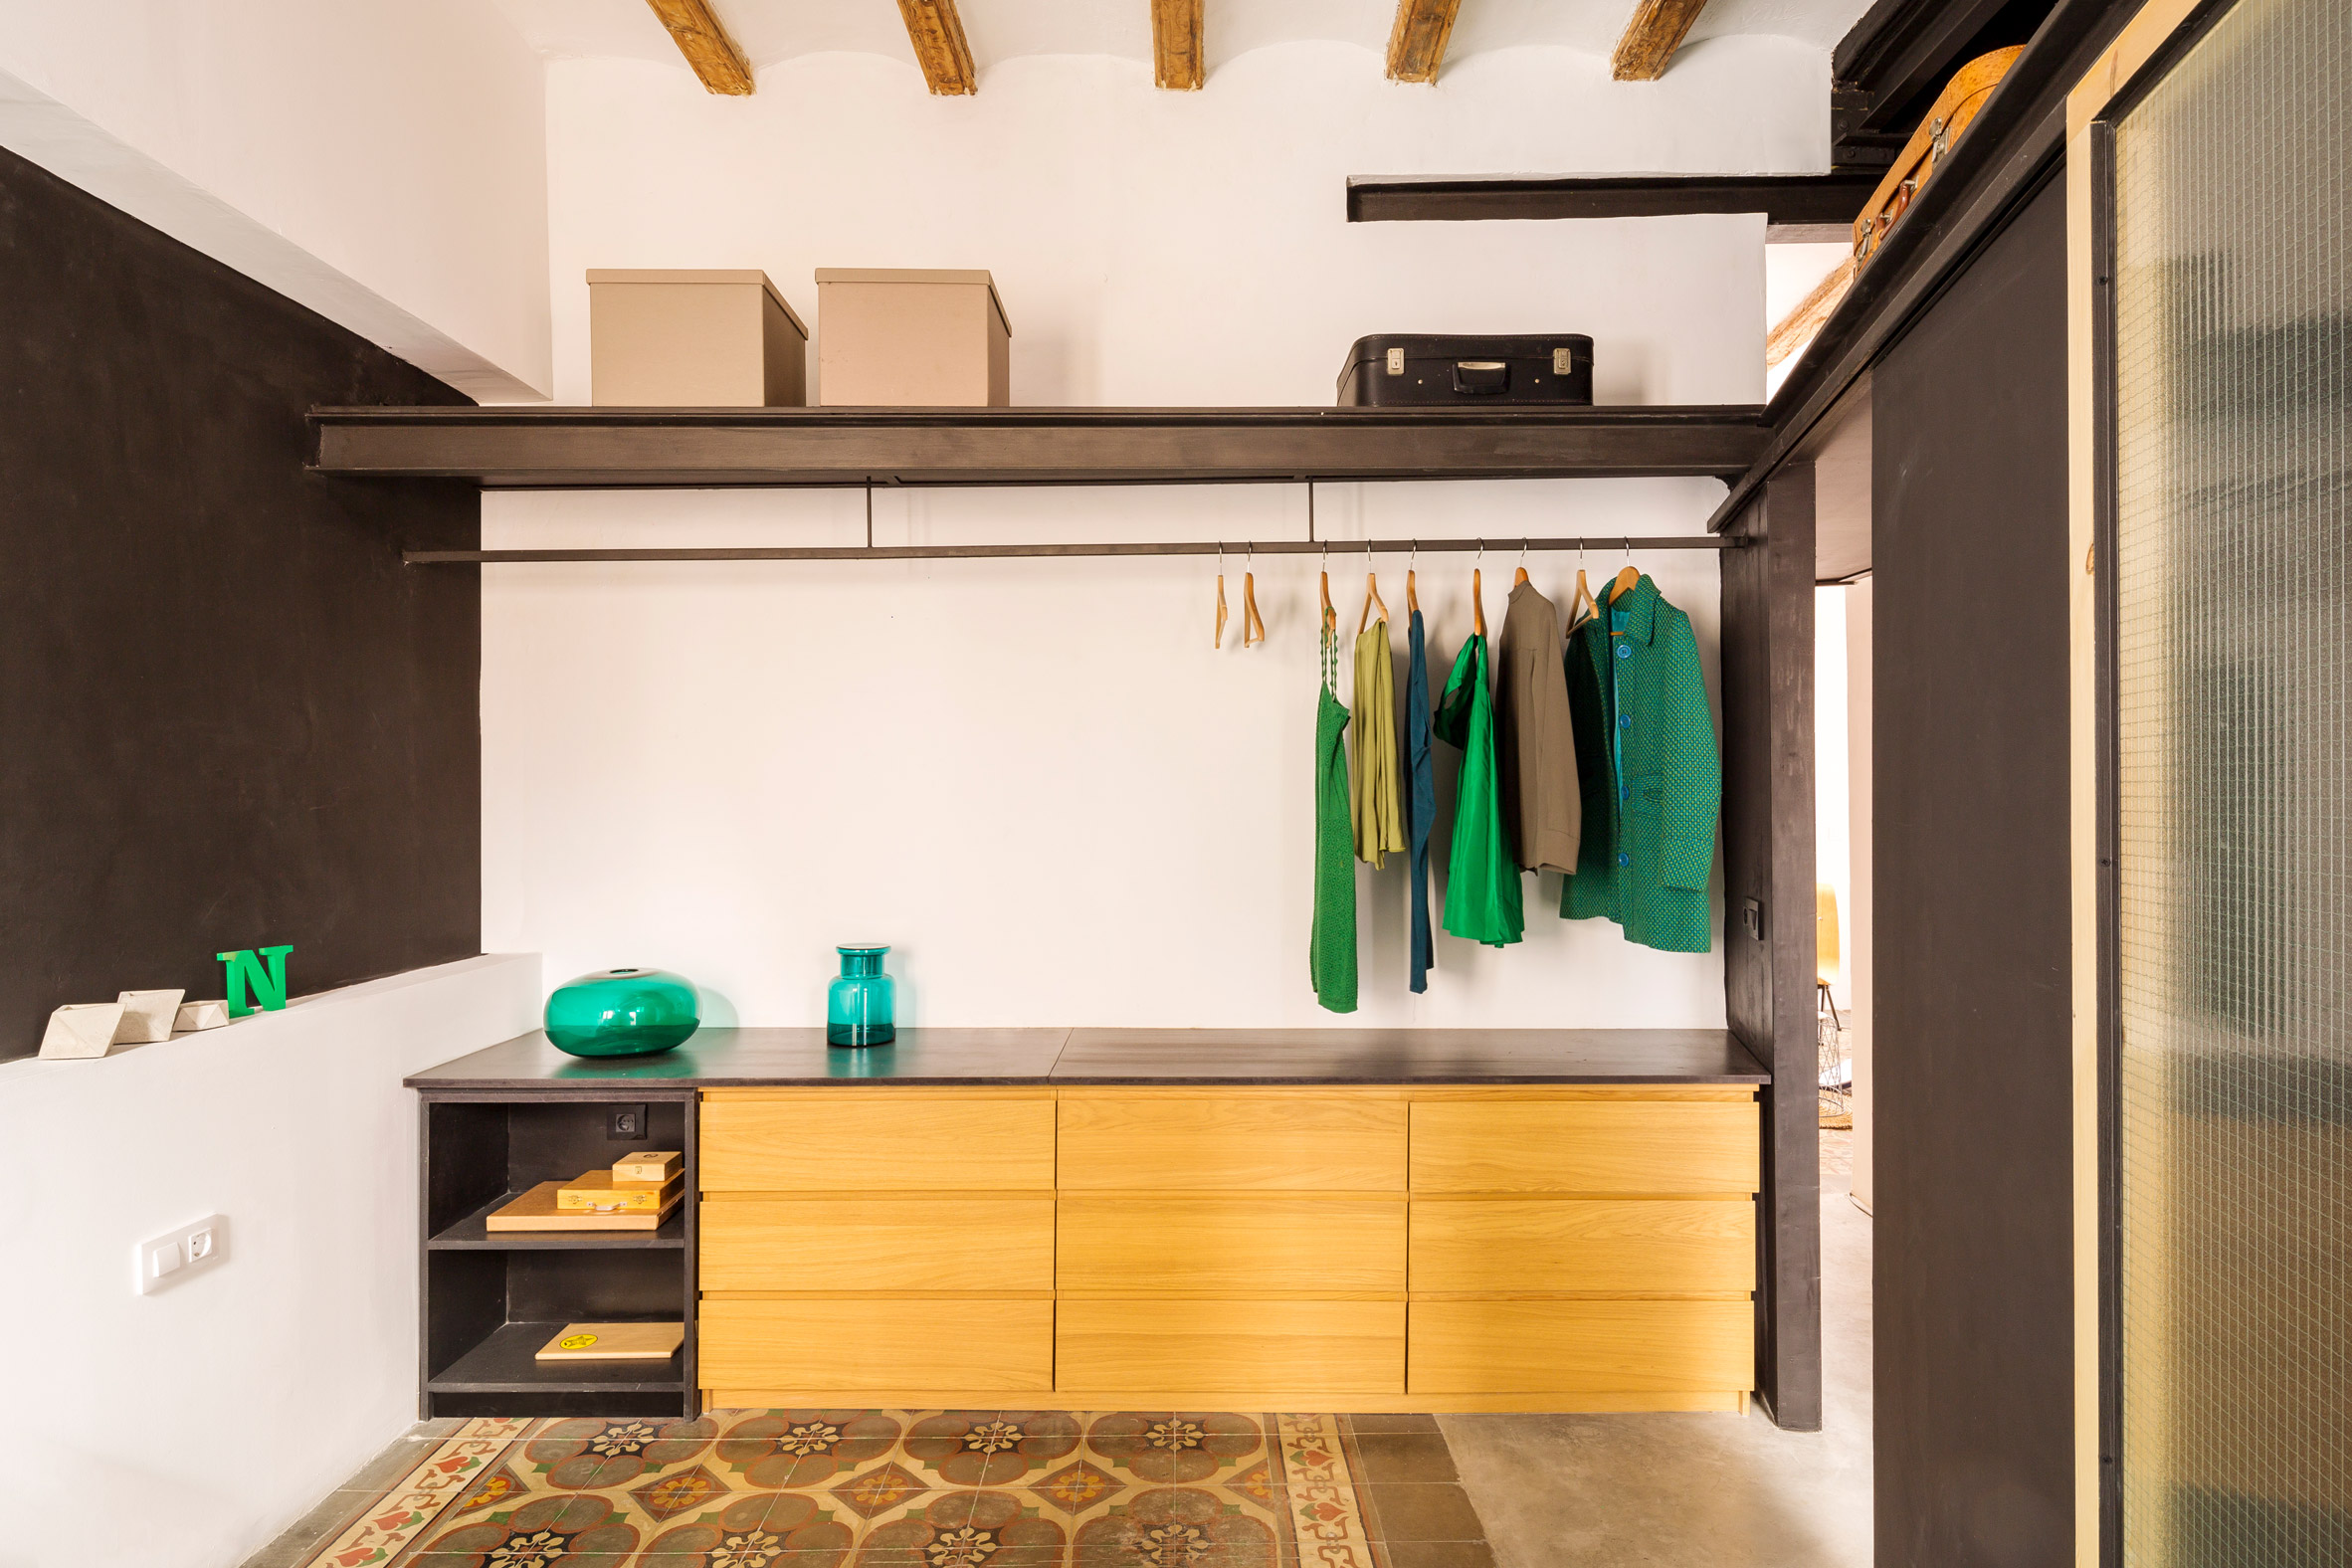 end-of-the-roc-nook-architects-interiors-apartments-spain-barcelona_dezeen_2364_col_7 (1)